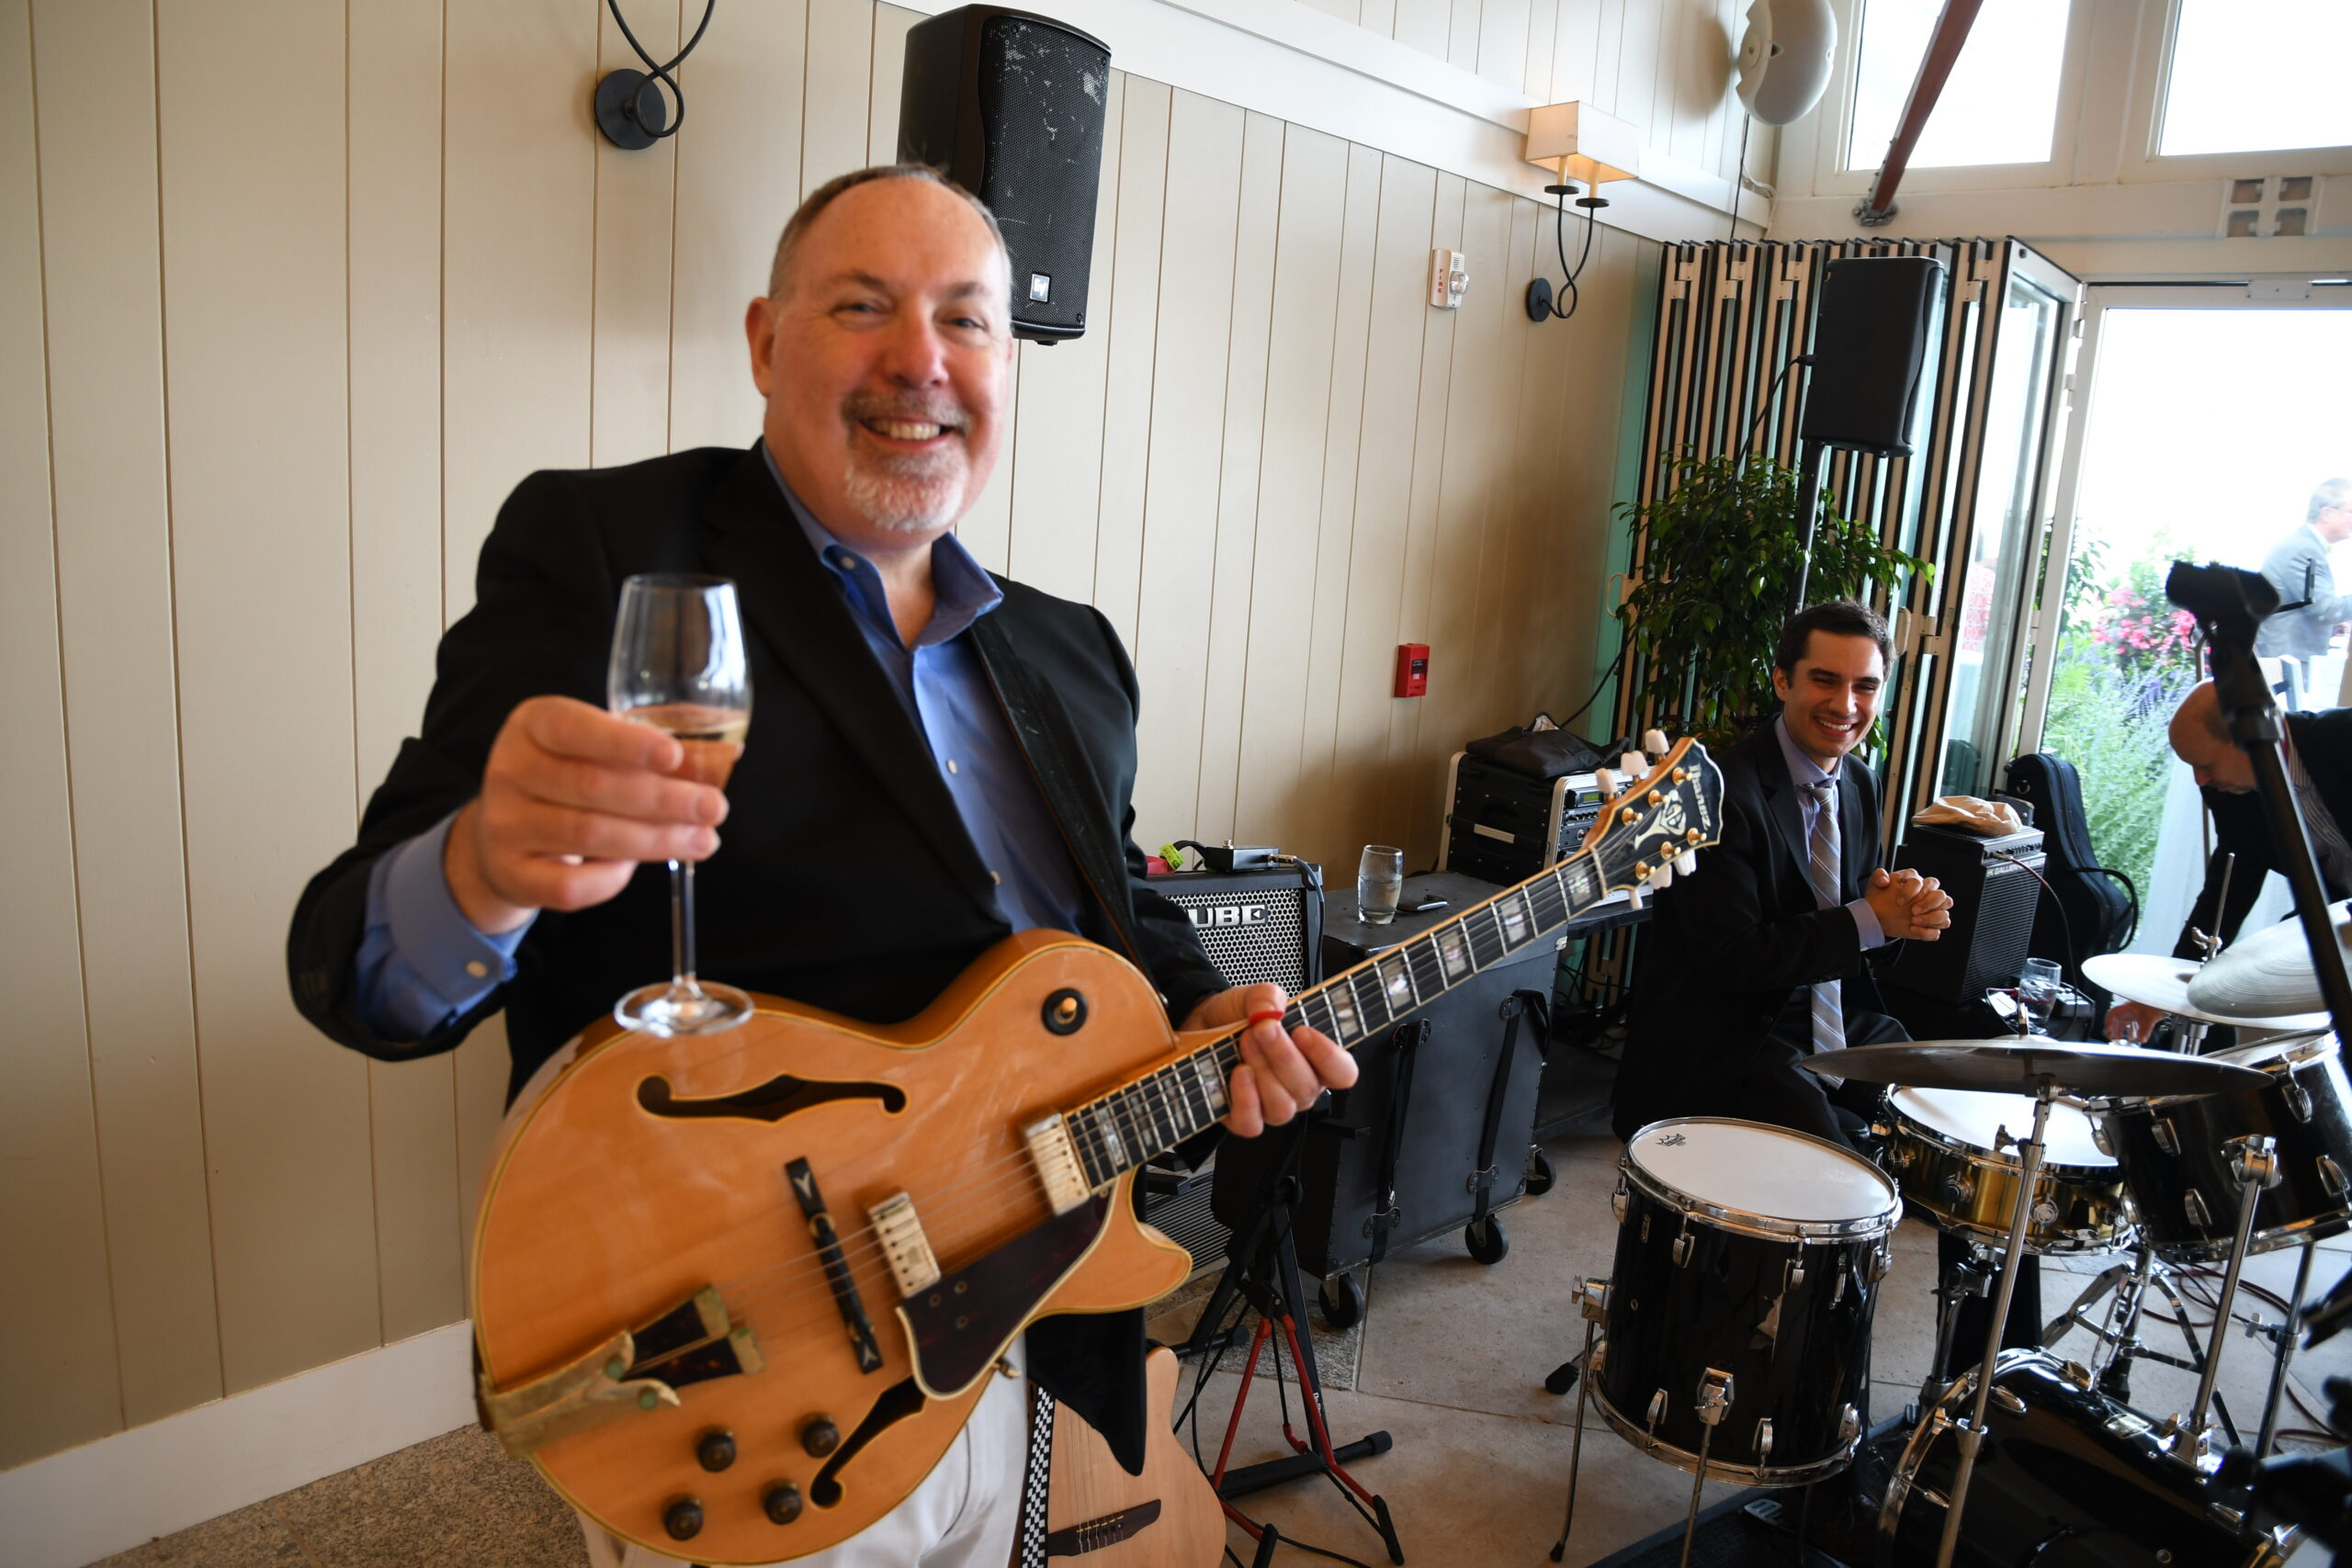 Bert Jackson performing at Oysters & Champagne in 2019.